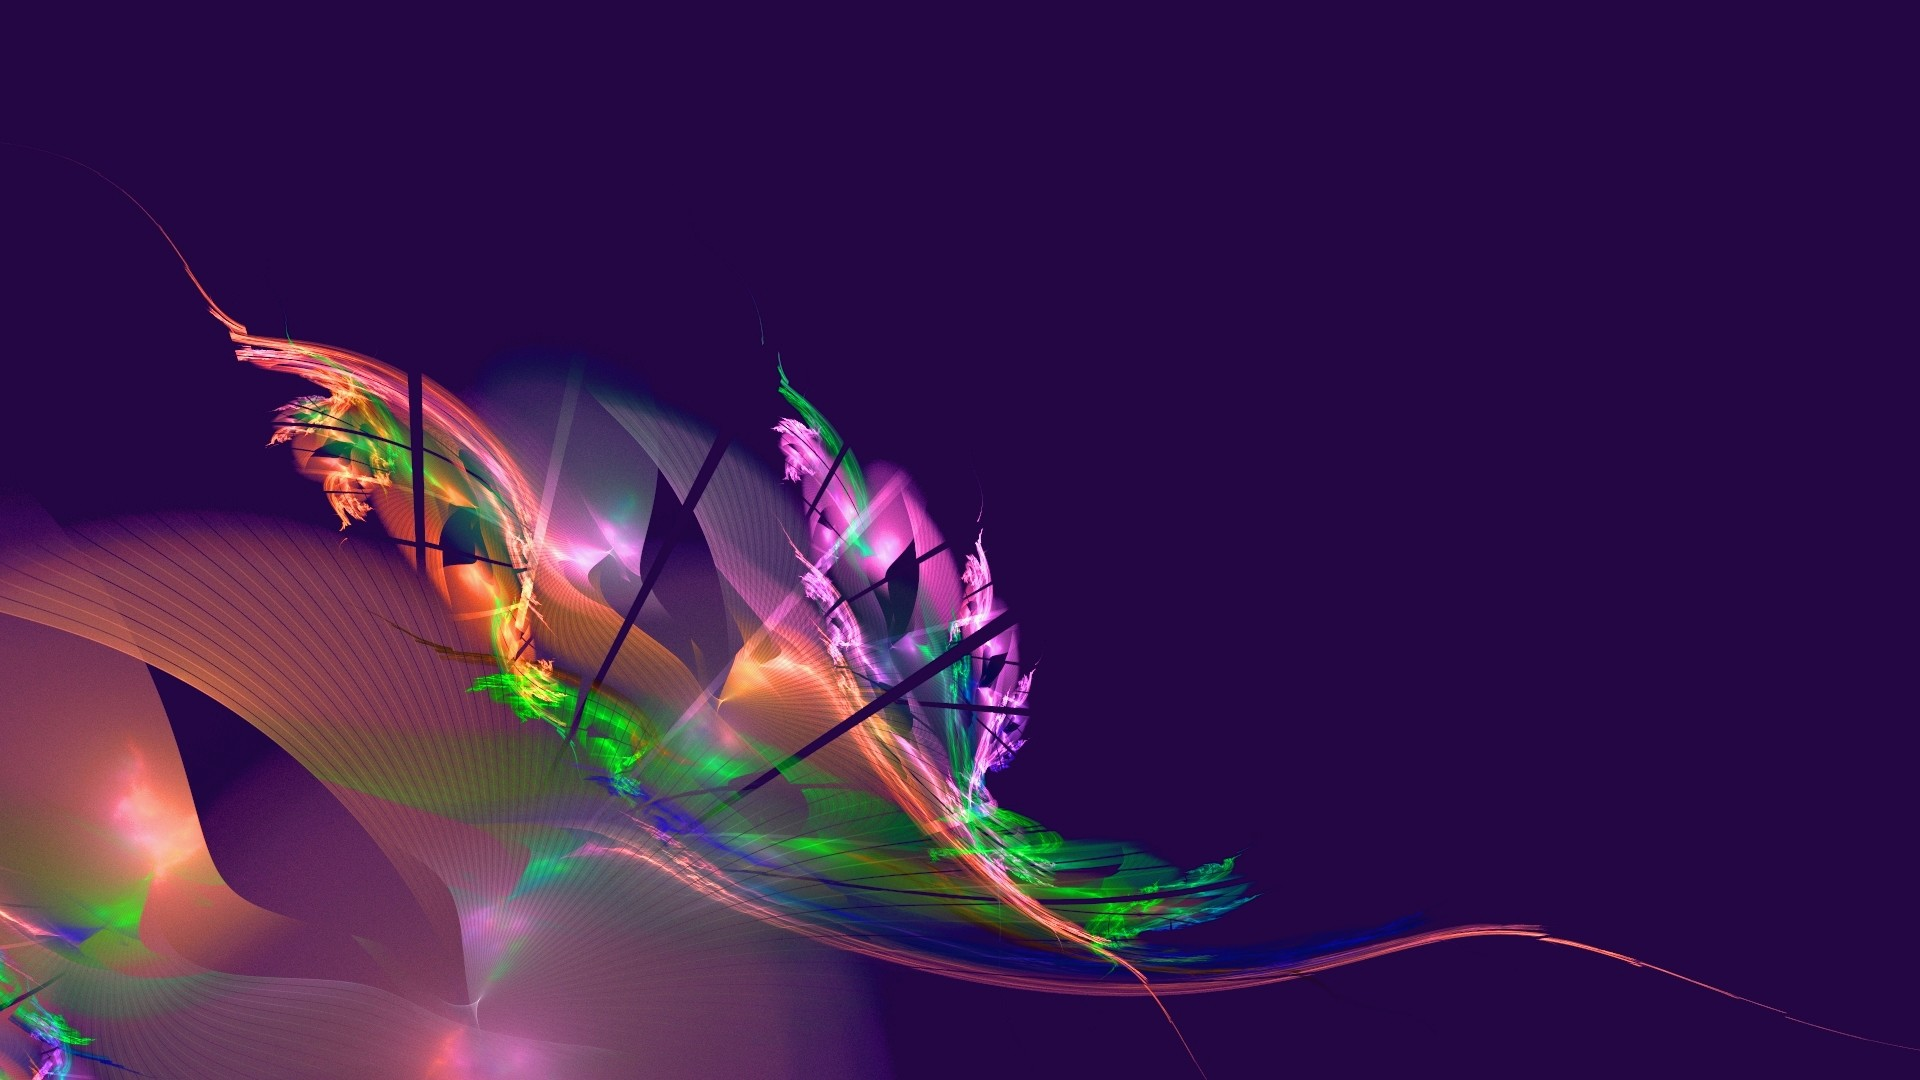 Purple Butterfly Backgrounds (55+ images)